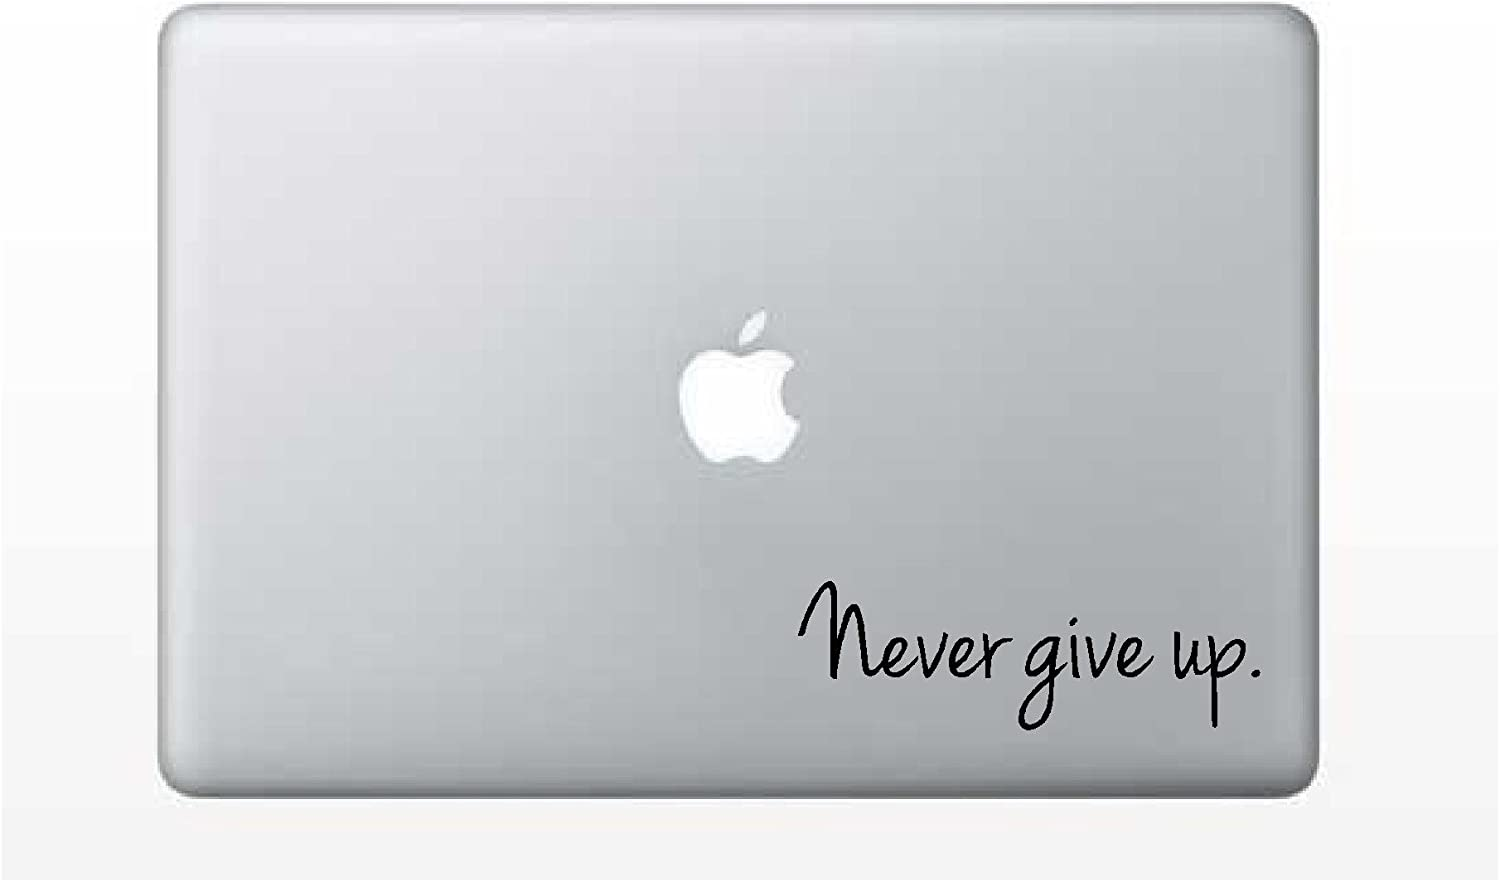 Laptop Decal - Never give up Challenge Education School Learning Inspirational Saying Sticker